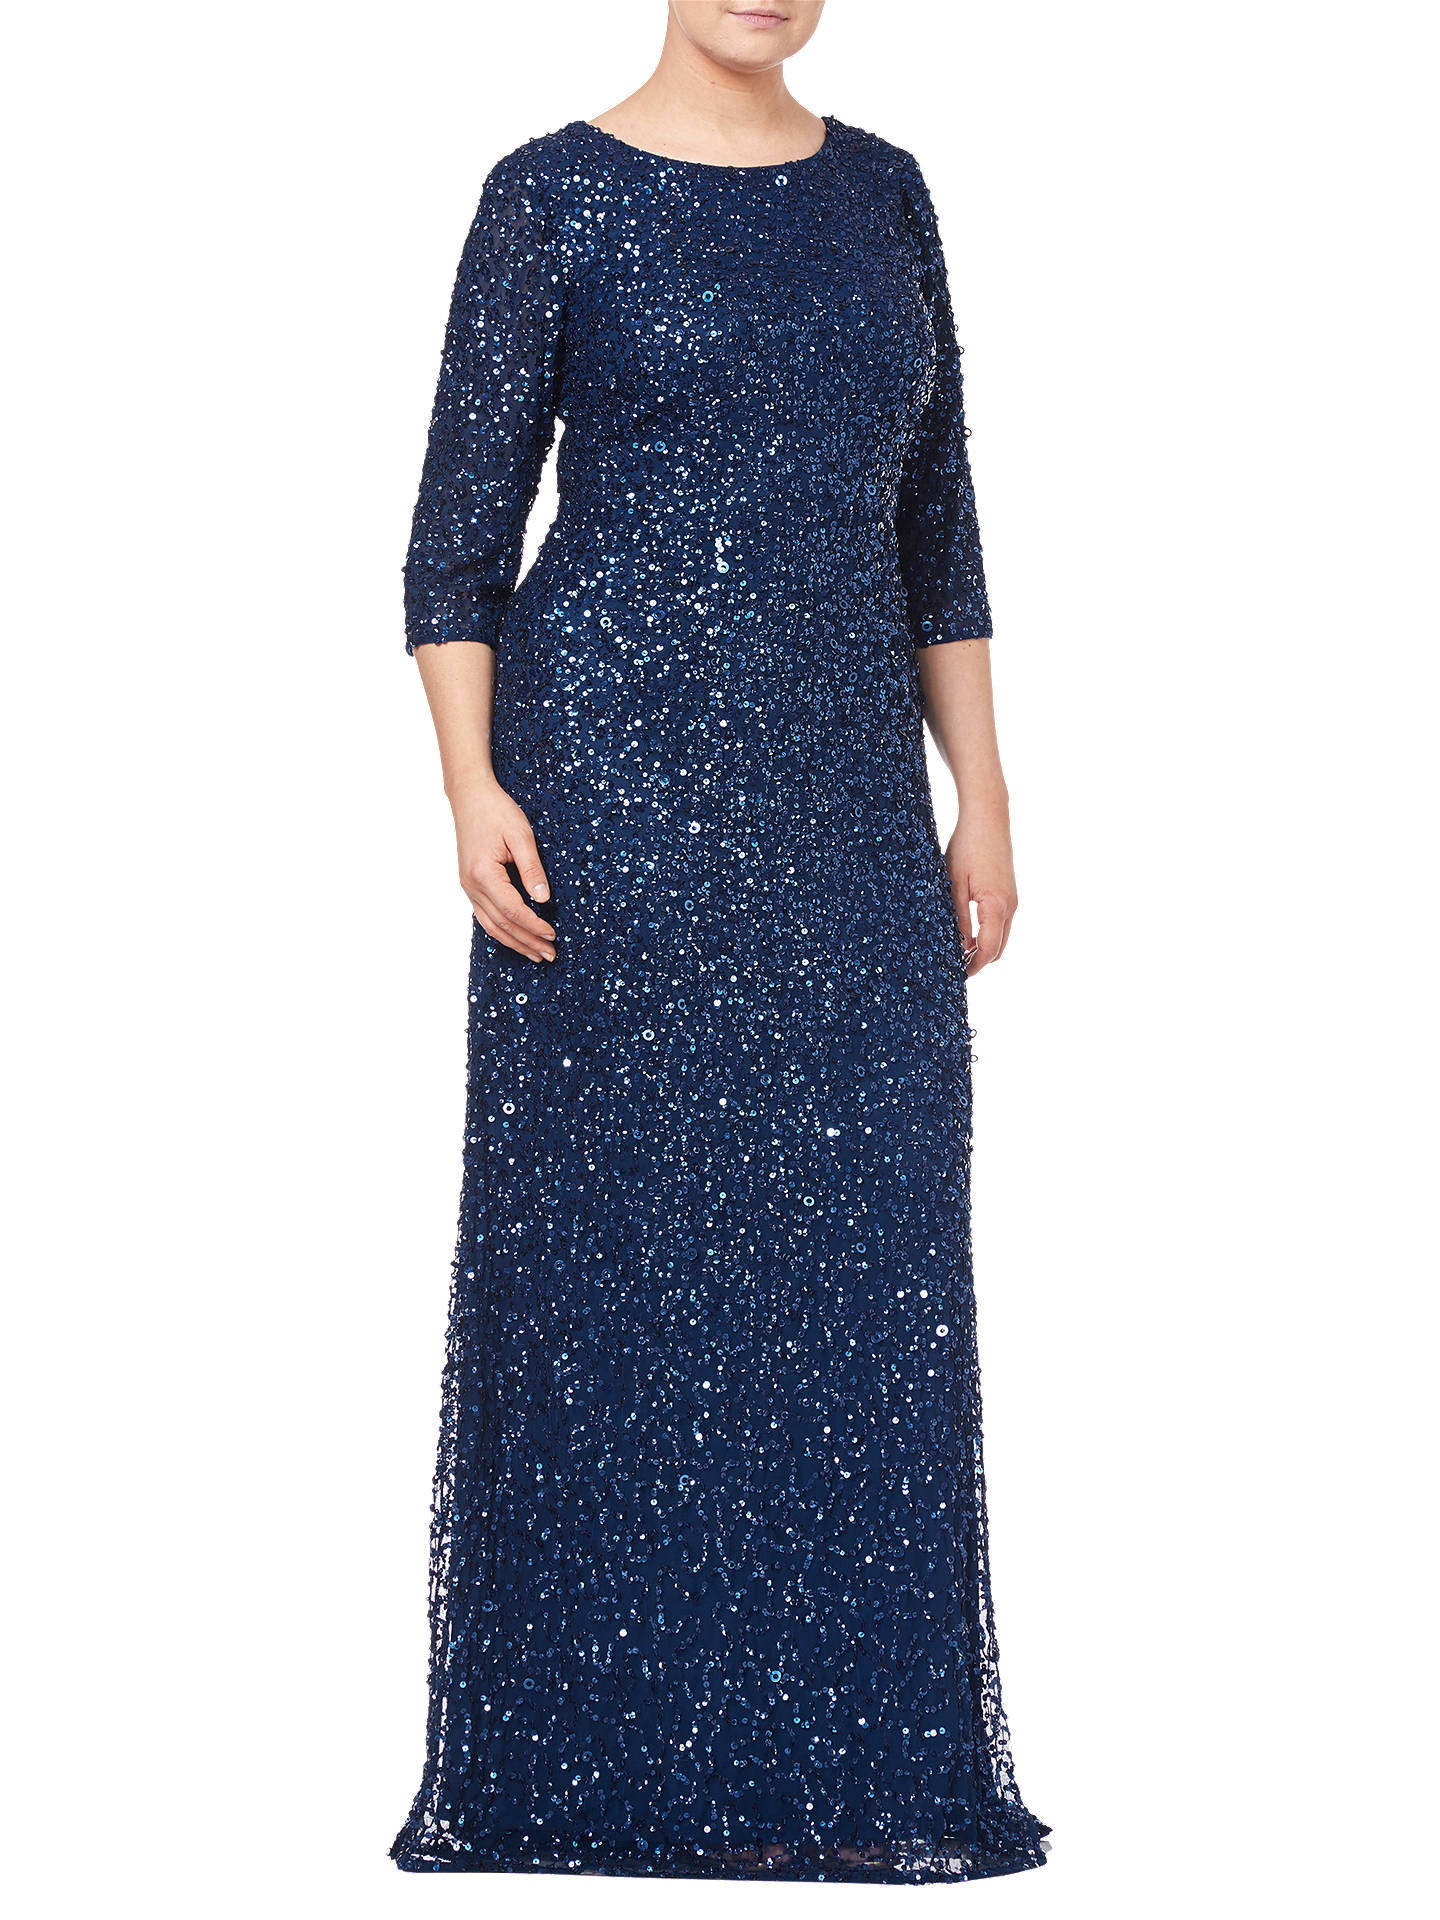 Buy Adrianna Papell Beaded Mermaid Dress, Deep Blue, 18 Online at johnlewis.com